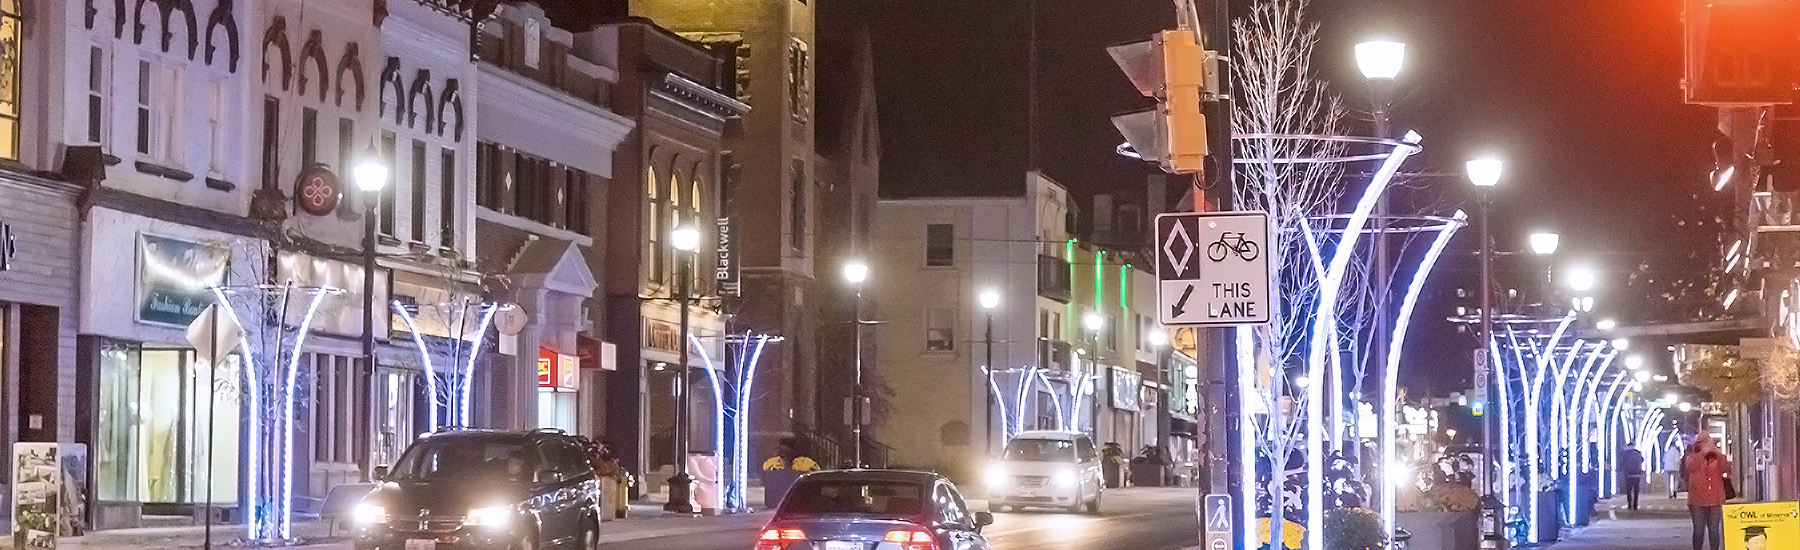 Uptown waterloo at night in the winter